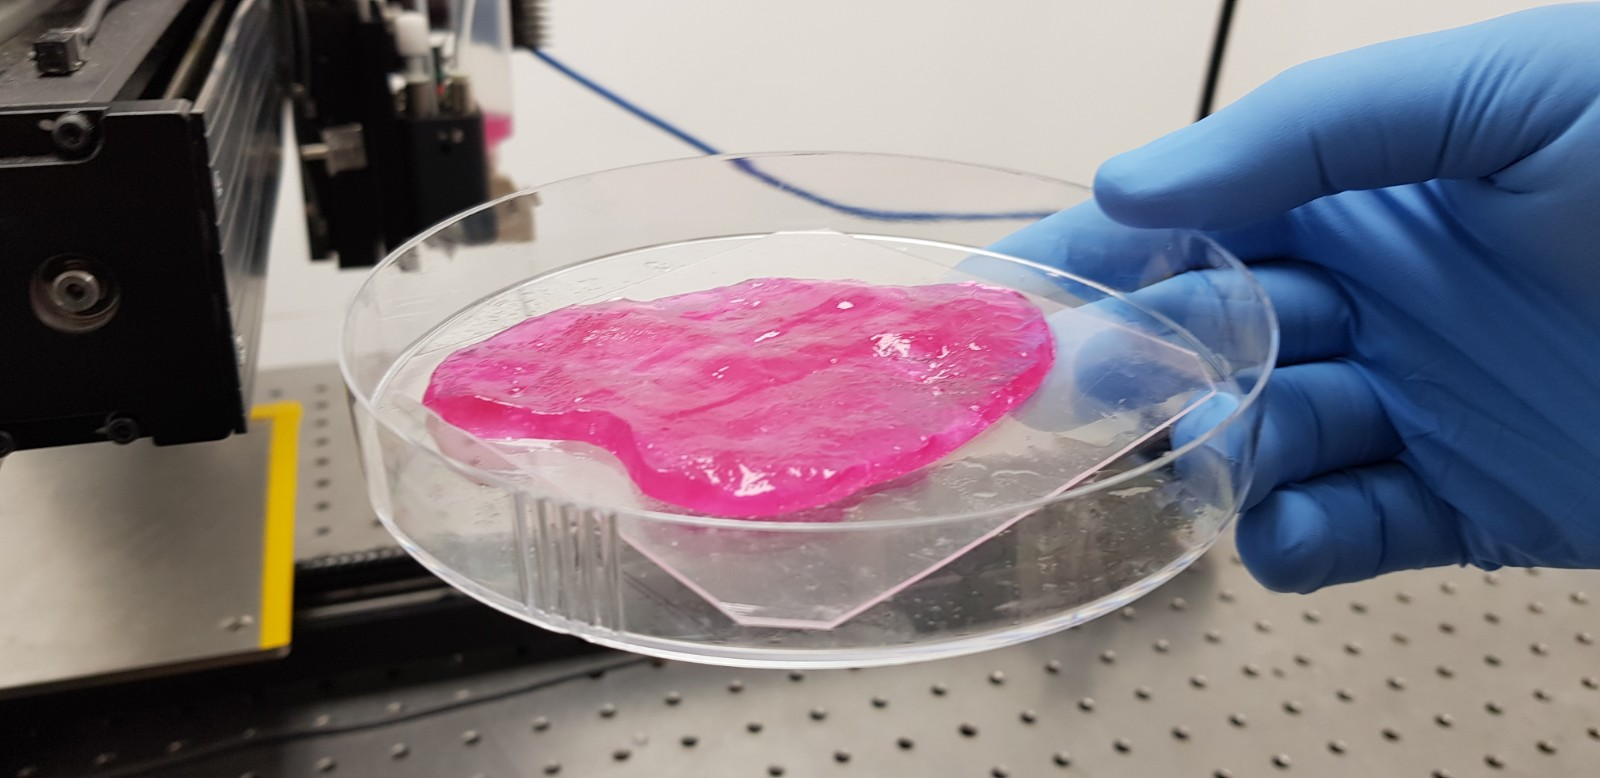 The 3D printed meat culture structures are grown in incubators before being frozen and packaged for shipping. Image via Meat-Tech 3D.